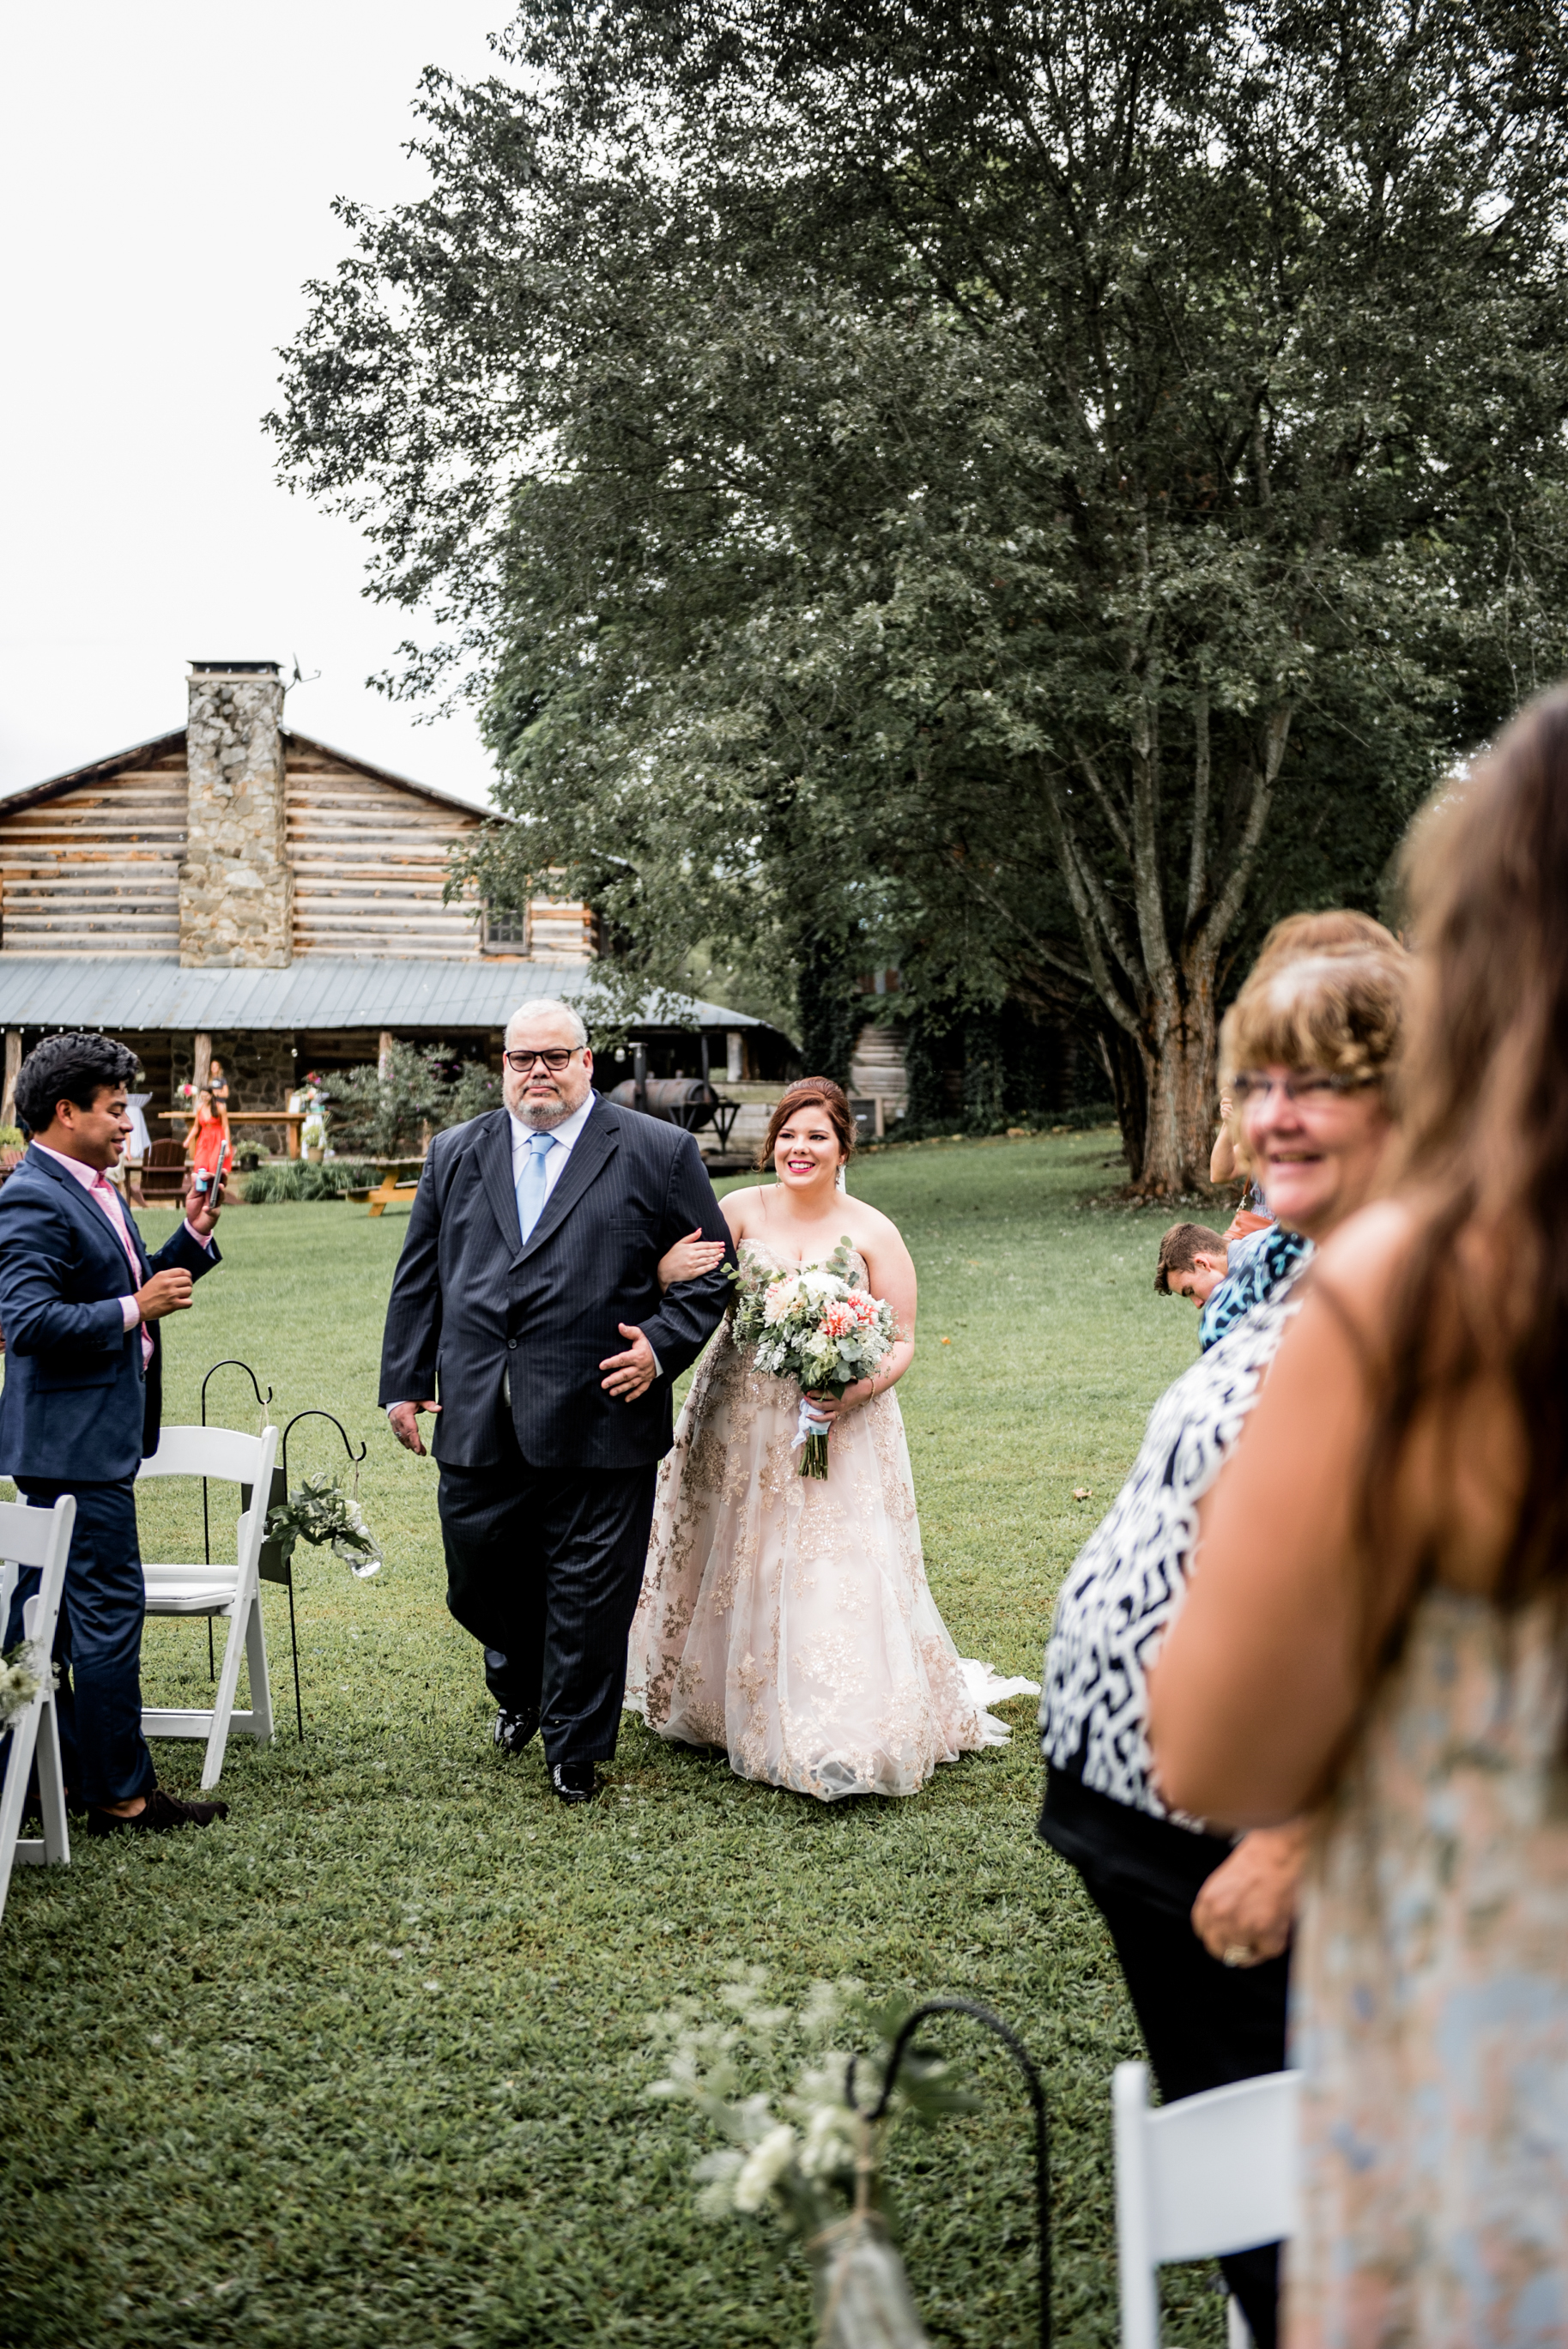 bride and father walk down aisle with rustic lodge in background